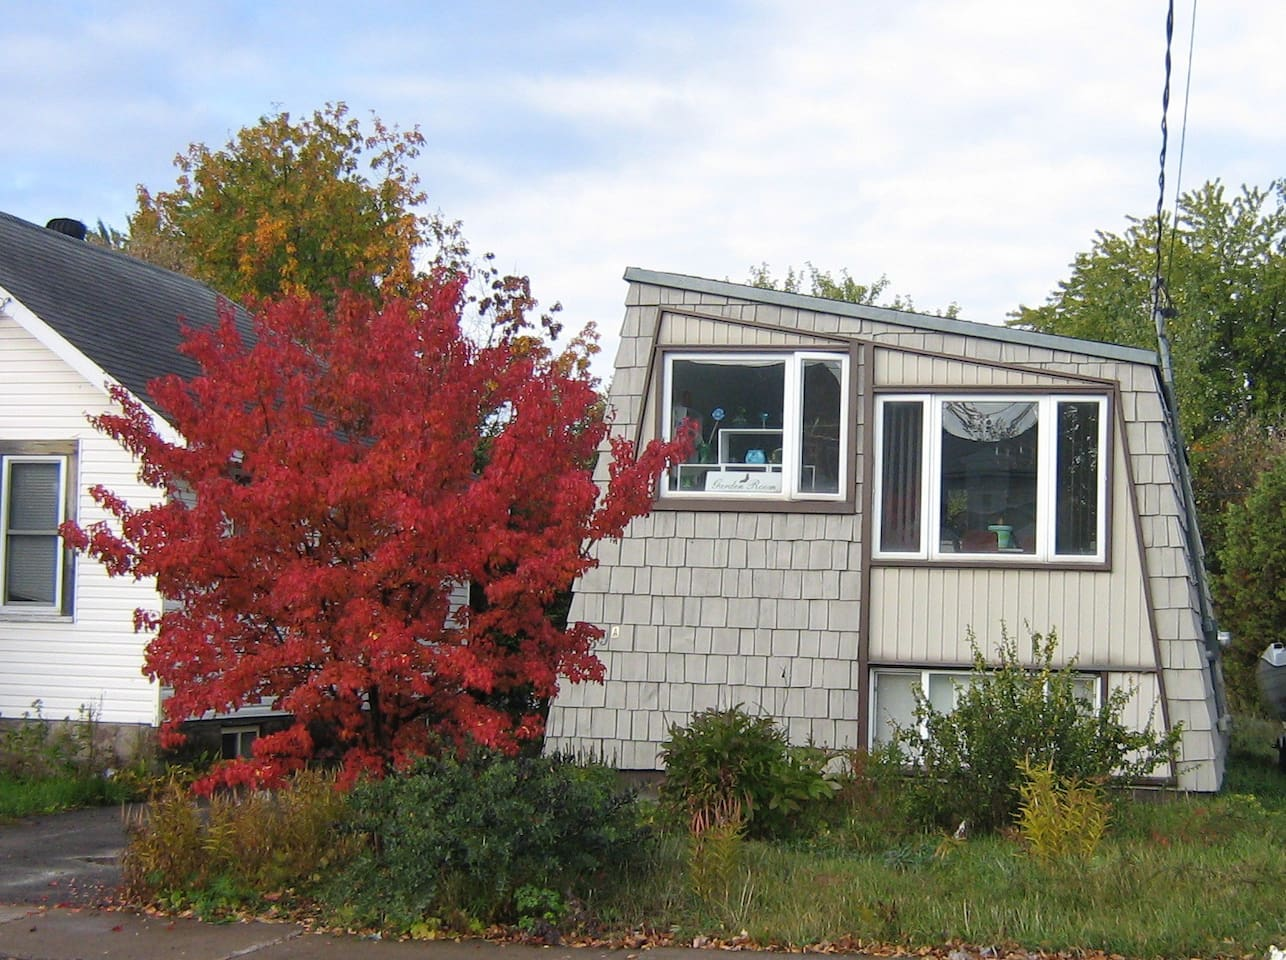 Newly painted grey house. Beautiful small tree is only red in the fall